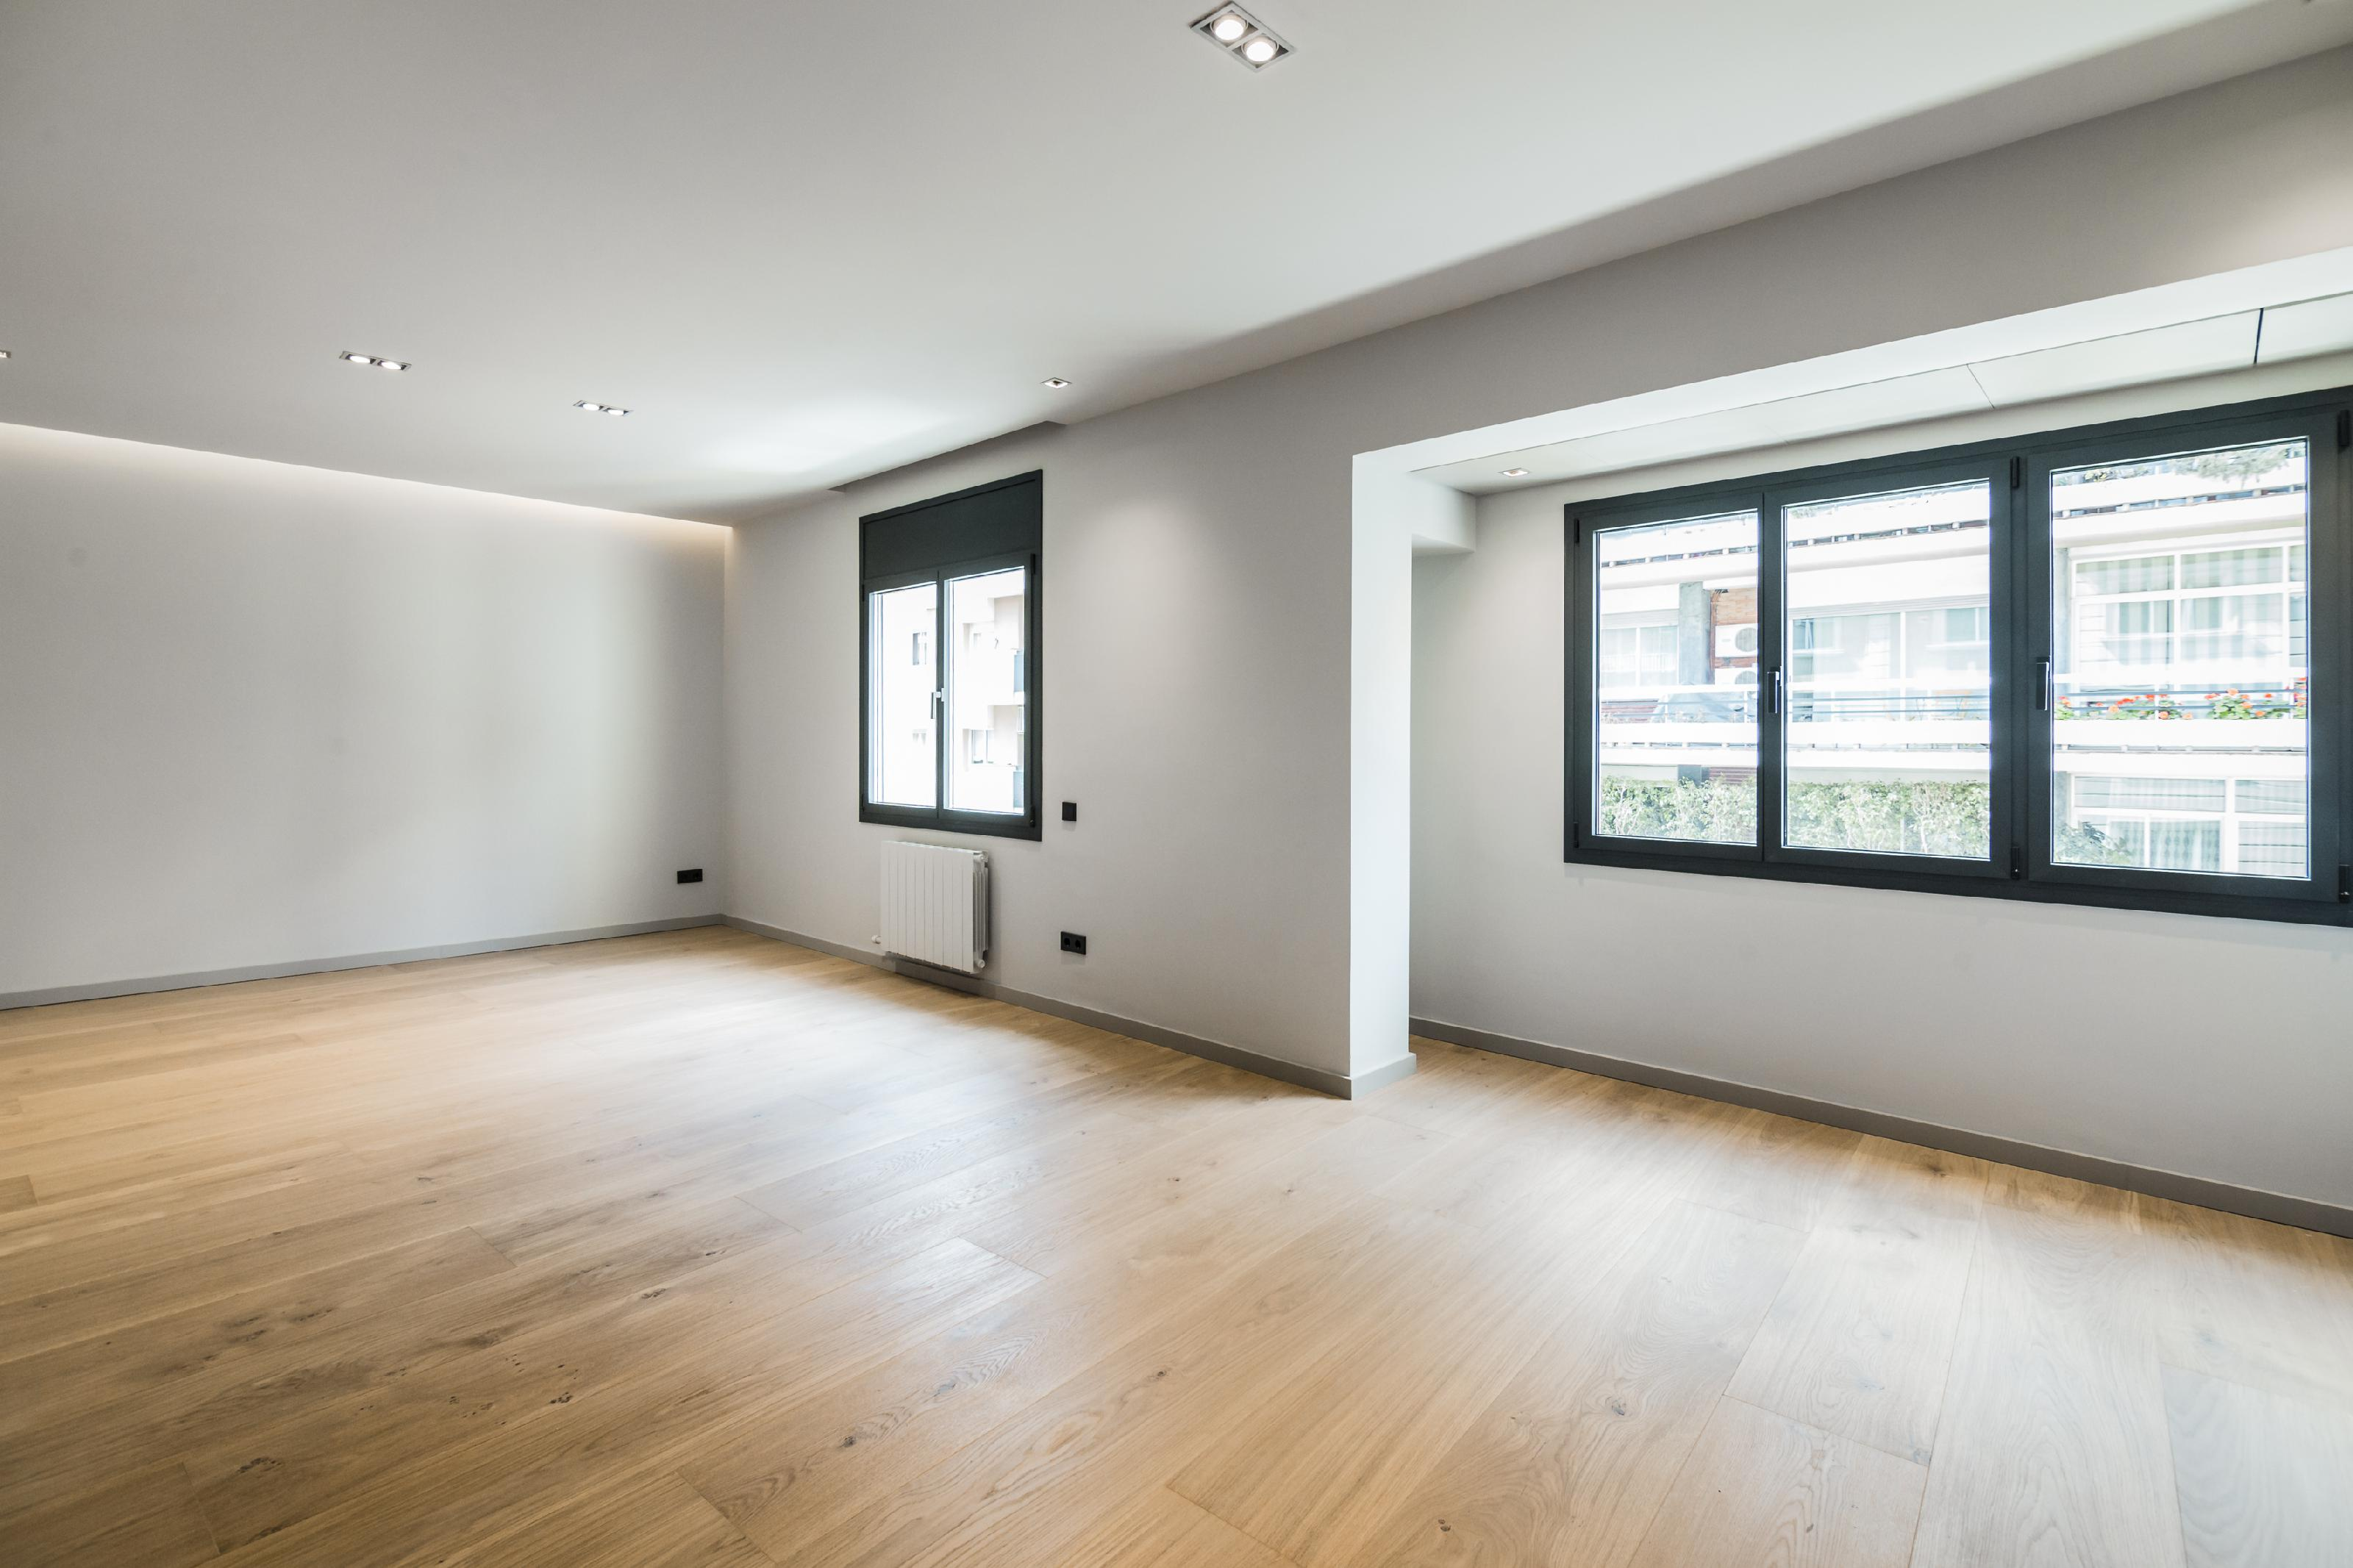 223979 Apartment for sale in Sarrià-Sant Gervasi, Sant Gervasi-Galvany 24